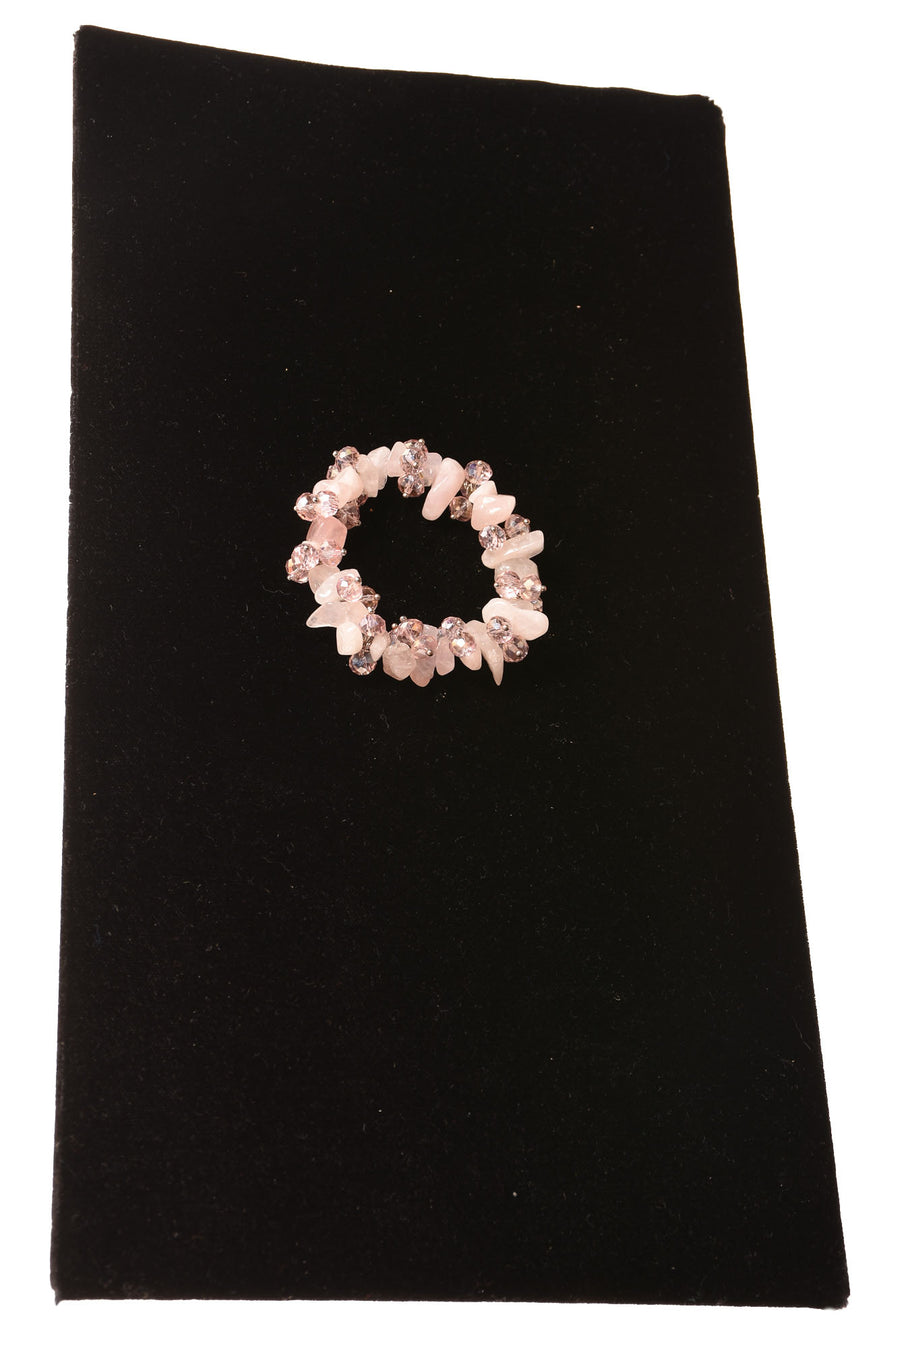 USED No Brand Women's Bracelet N/A Pink